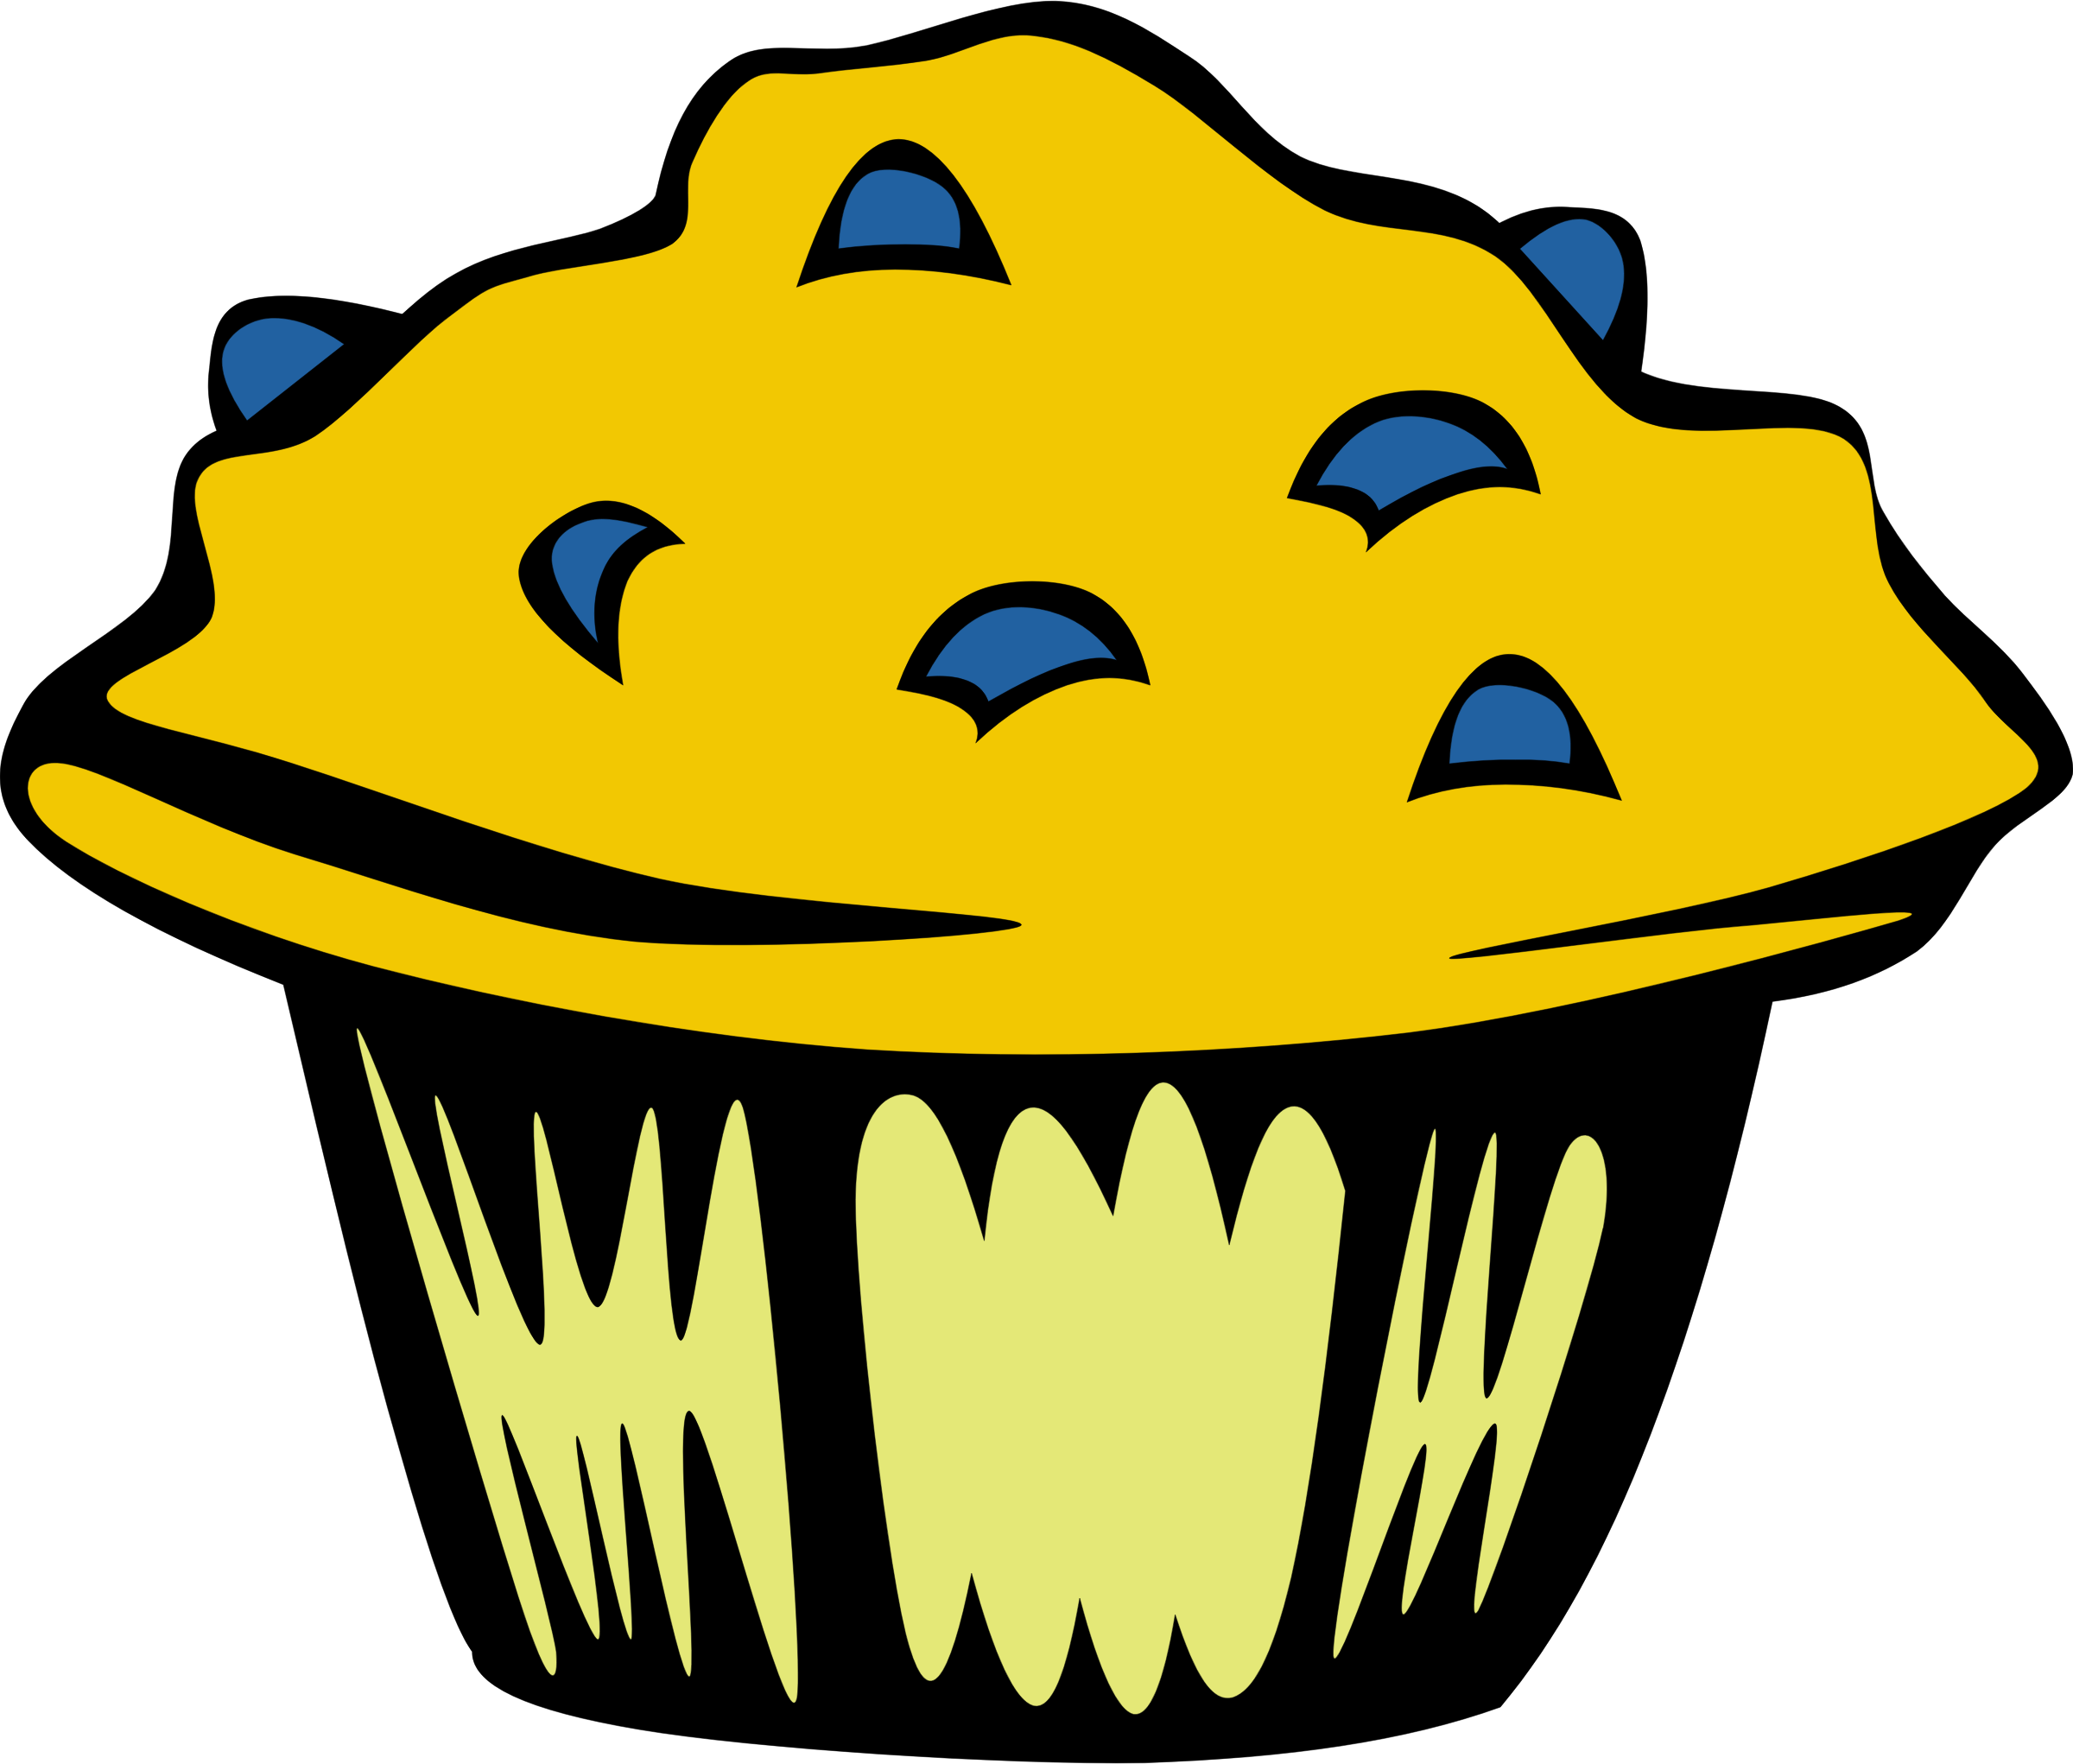 Blueberry muffin big fast. Muffins clipart yellow cupcake